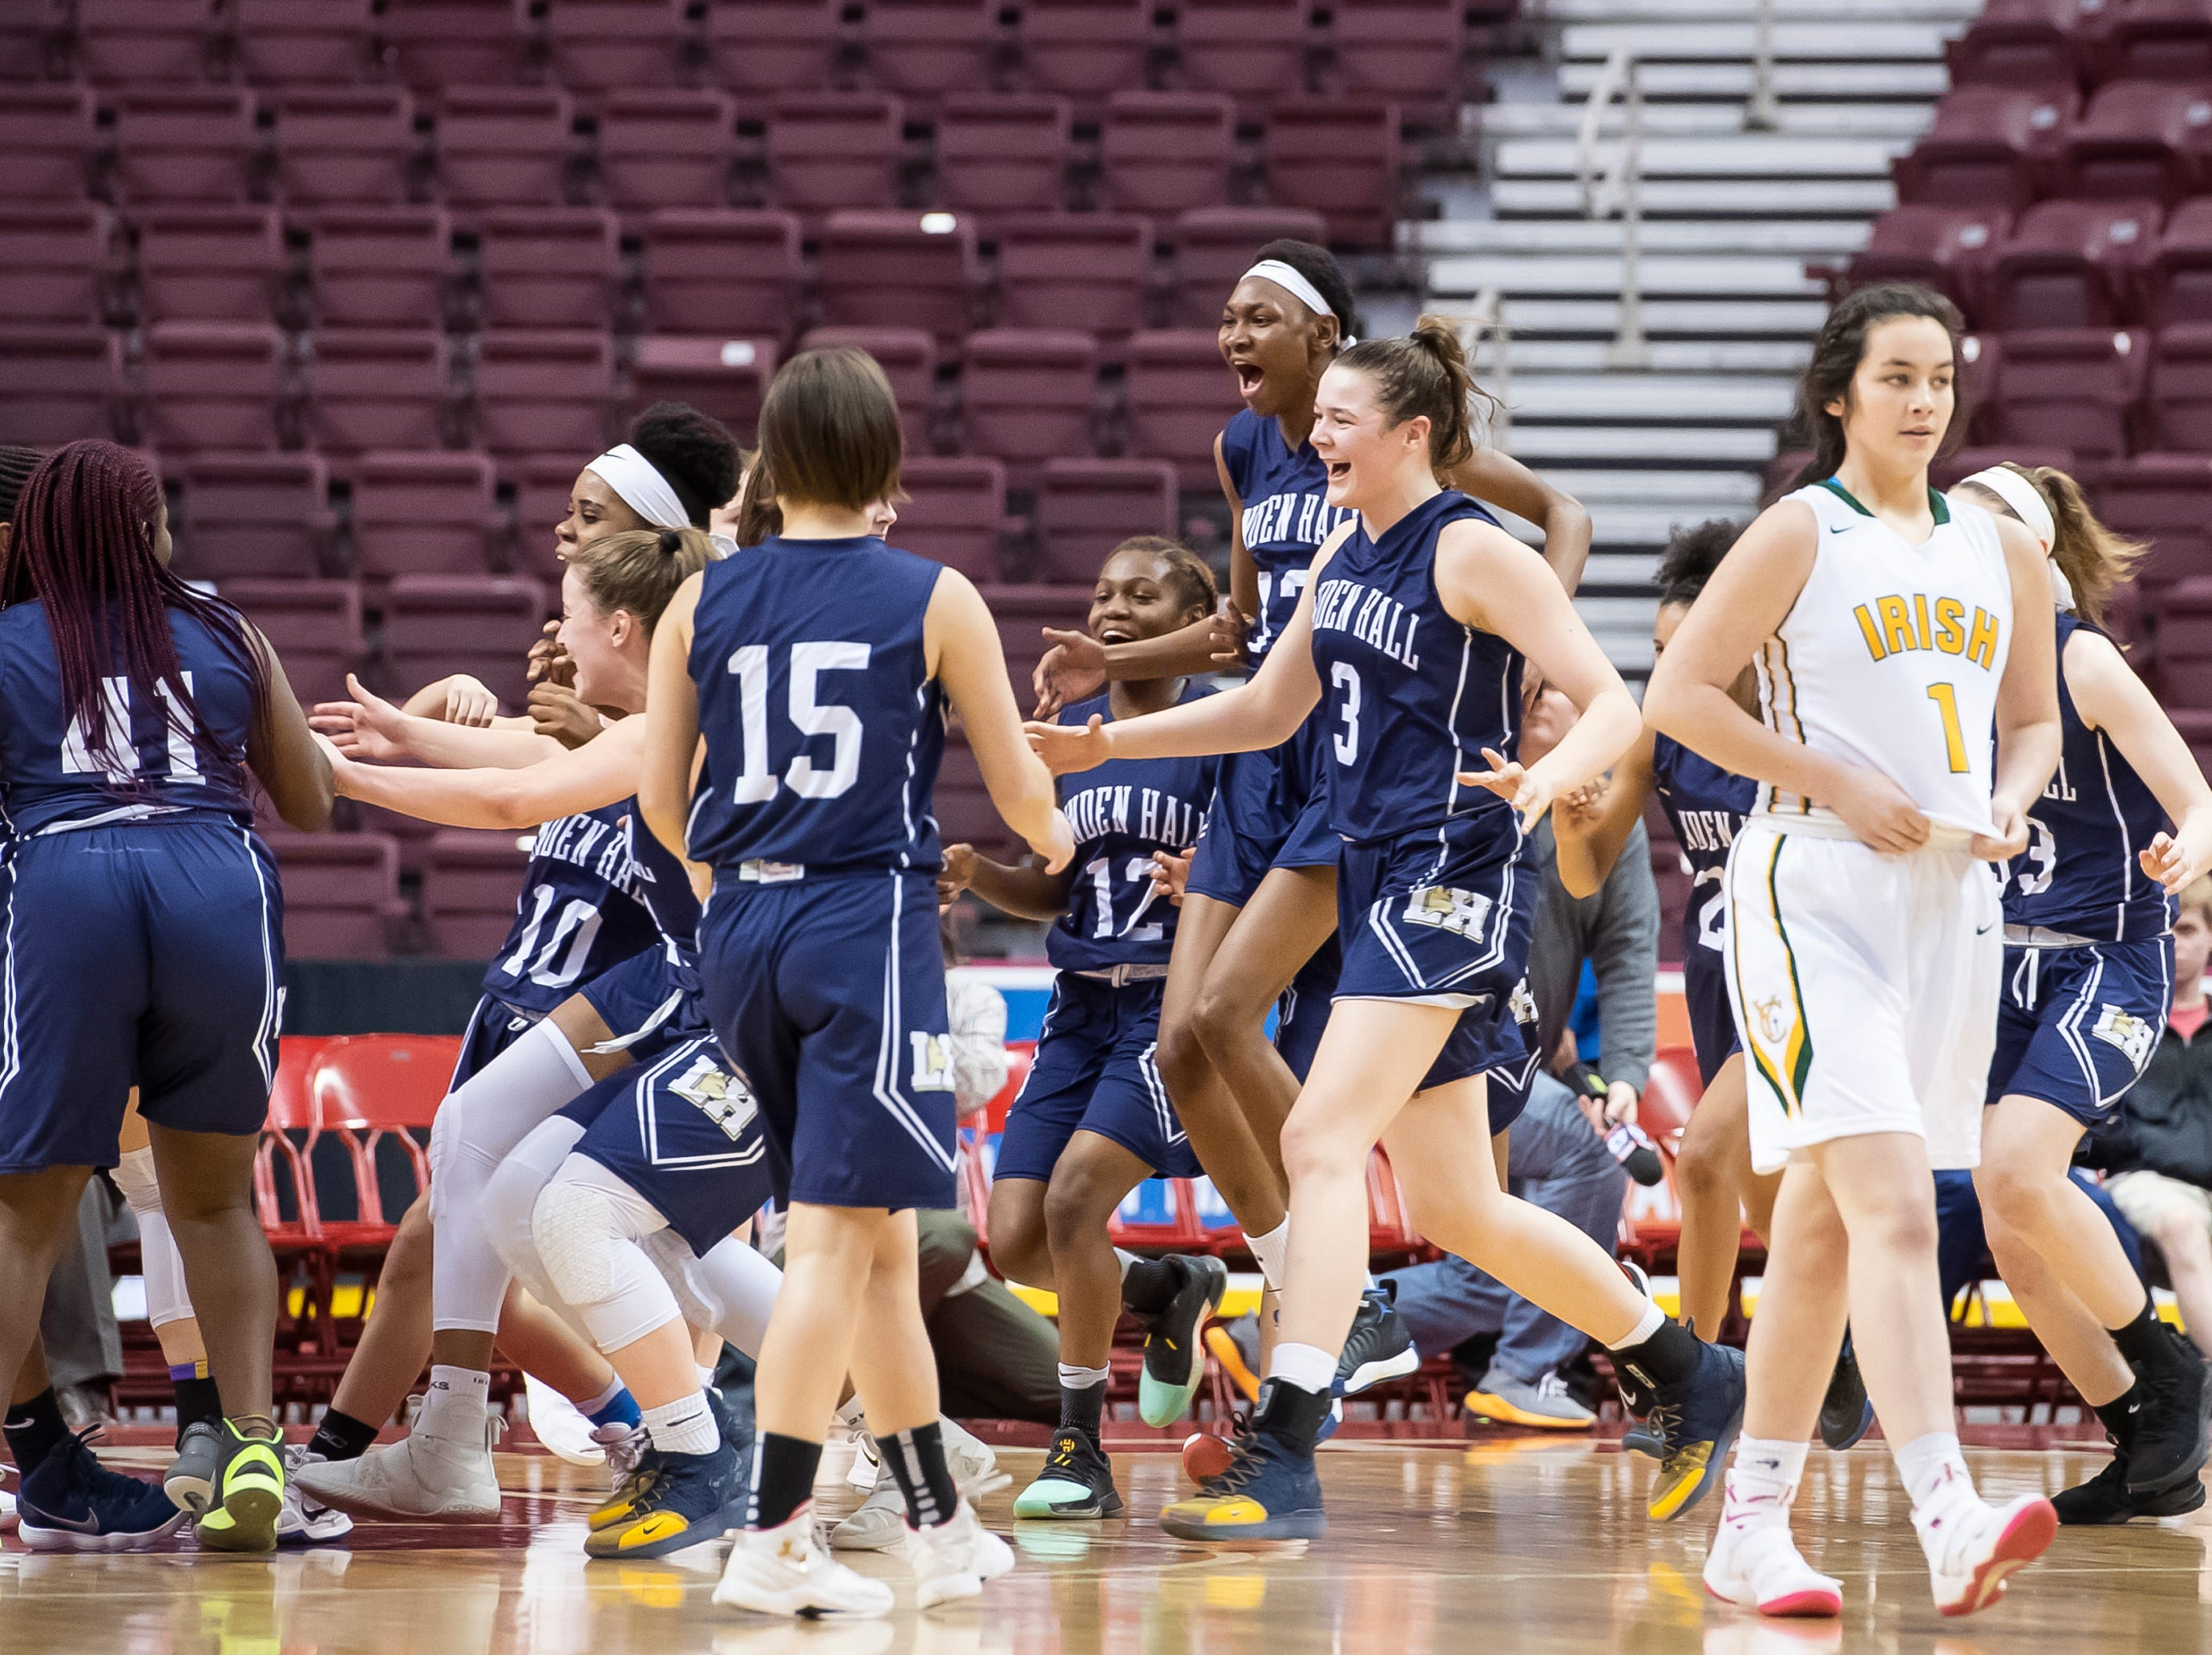 Linden Hall celebrates after defeating York Catholic in the District 3 2-A girls championship game against Linden Hall at the Giant Center in Hershey Tuesday, Feb. 26, 2019. The Fighting Irish fell 56-27.